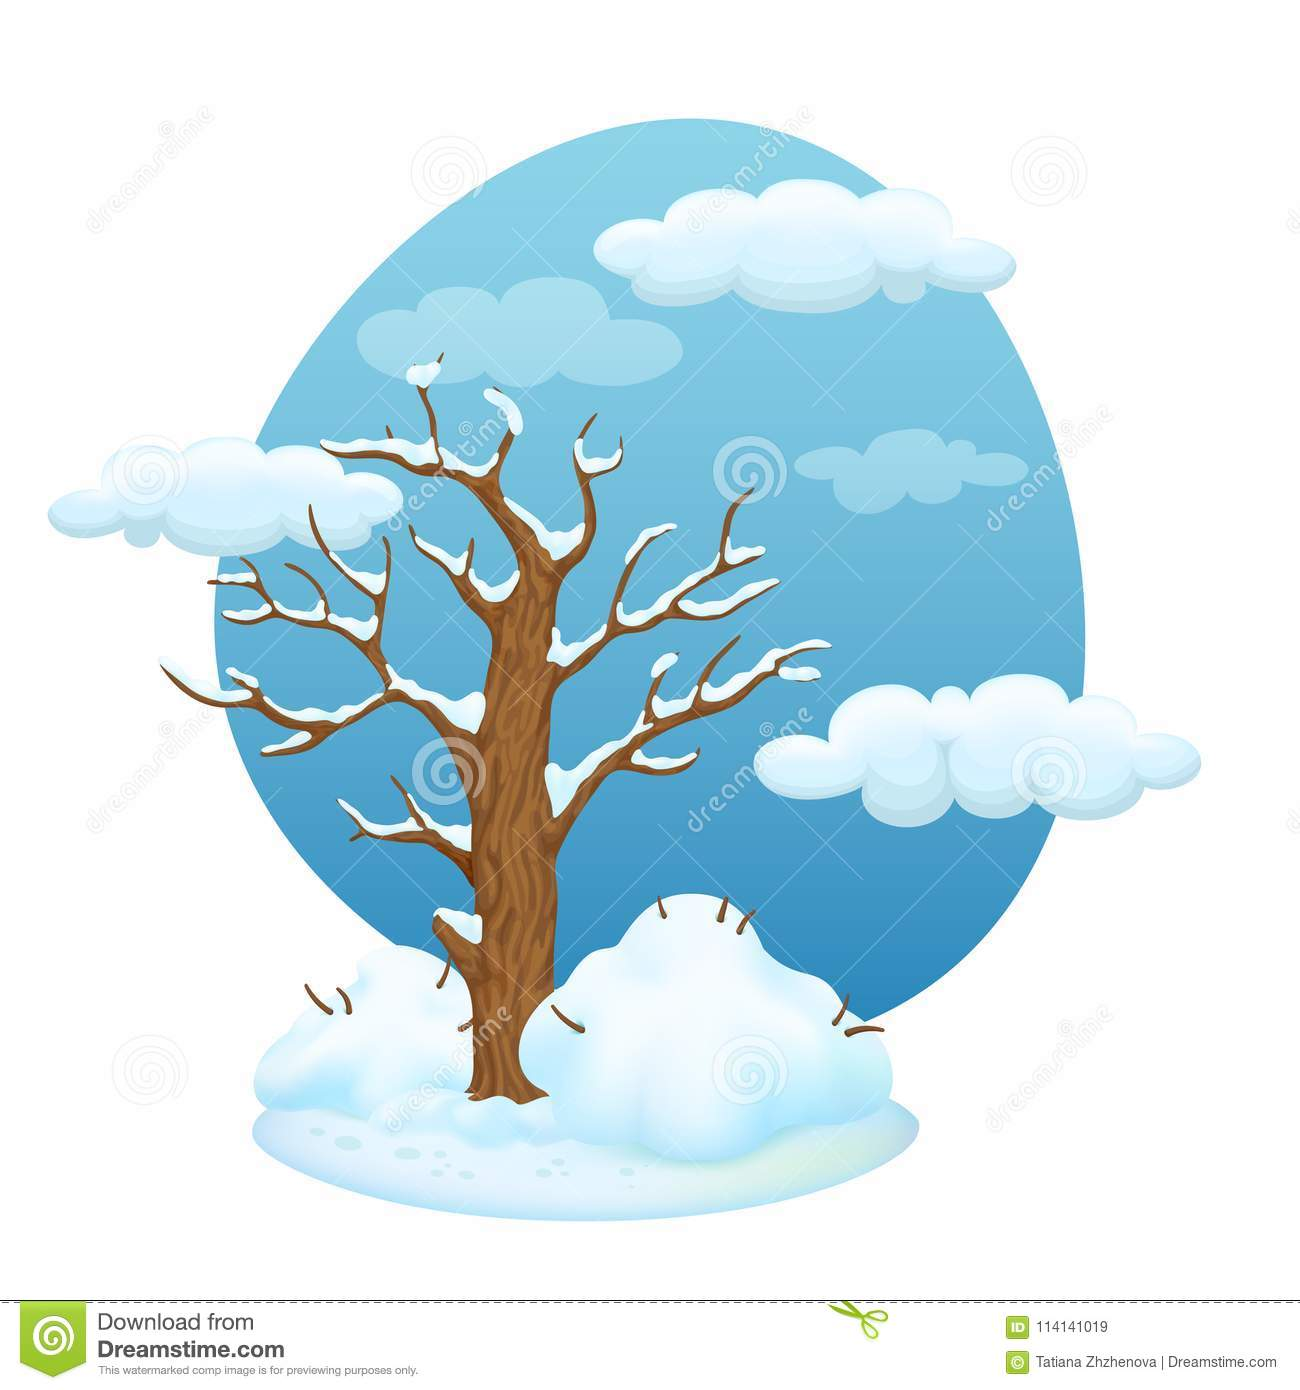 Cartoon Tree Winter Stock Illustrations 106 969 Cartoon Tree Winter Stock Illustrations Vectors Clipart Dreamstime Are you searching for cartoon christmas tree png images or vector? https www dreamstime com cartoon tree bushes winter scene illustration leaves branches covered snow snowbound bright blue sky clouds image114141019